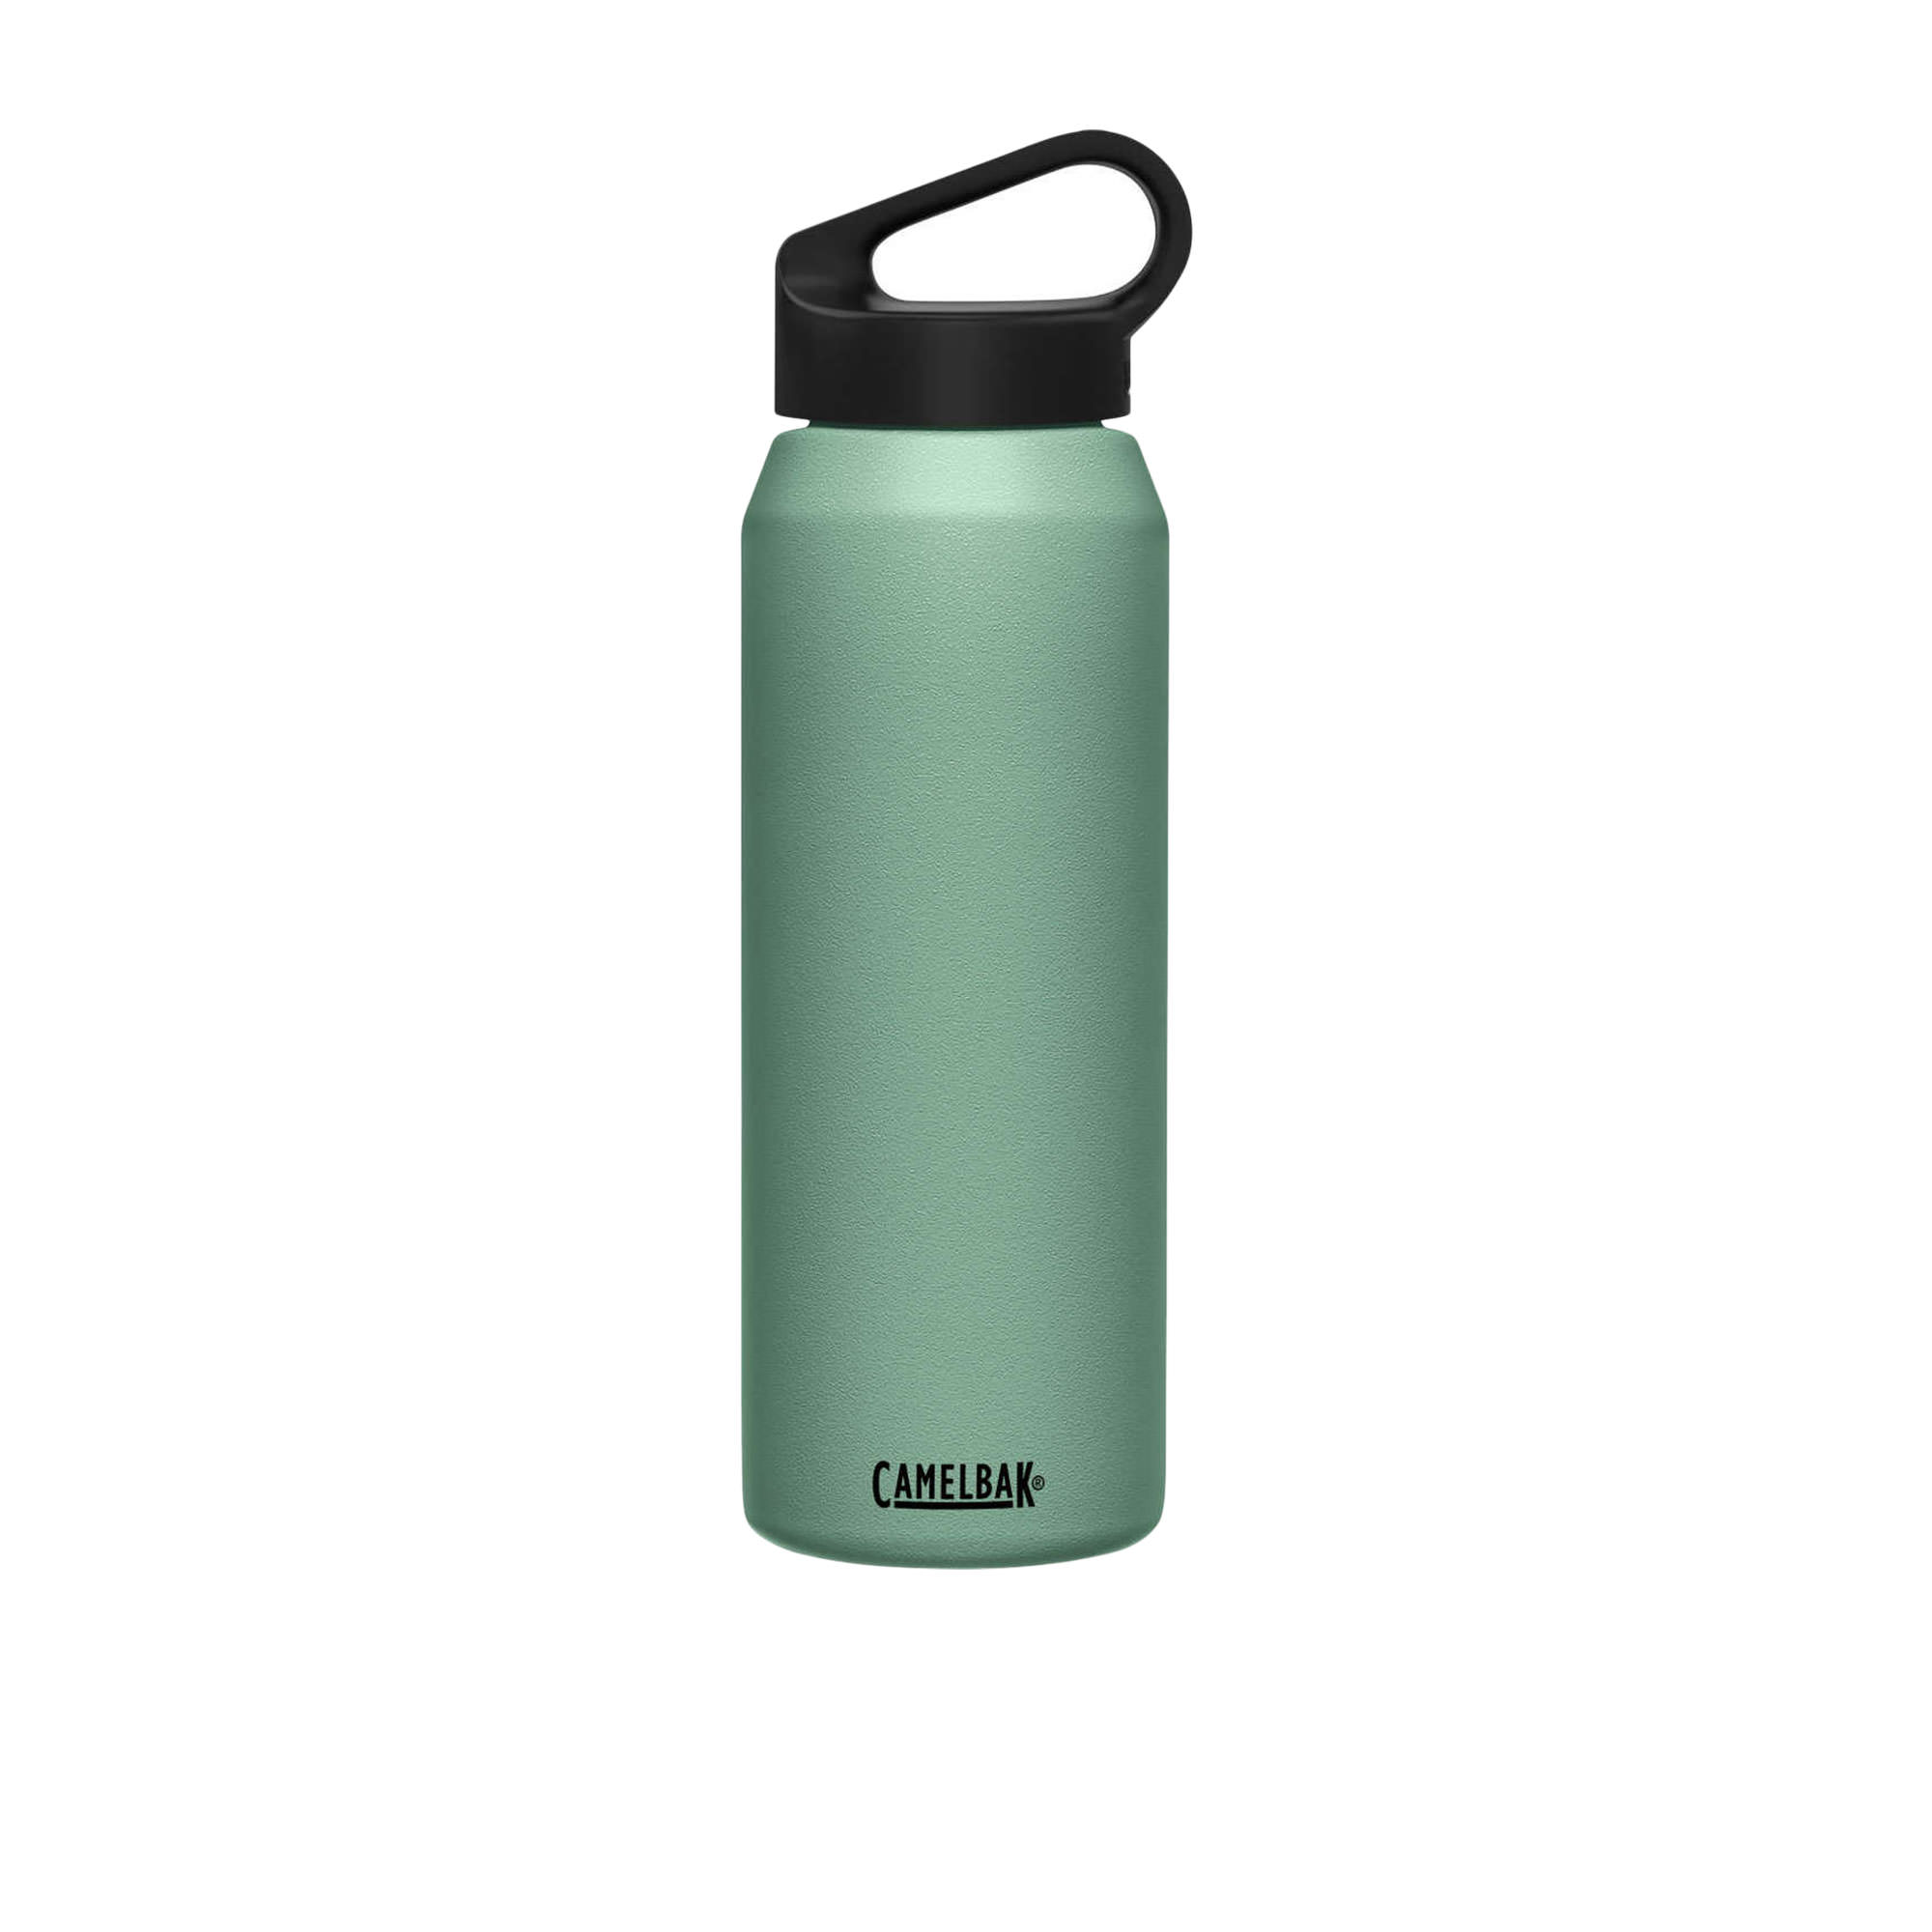 Camelbak Carry Cap Stainless Steel Insulated Drink Bottle 1L Moss Green